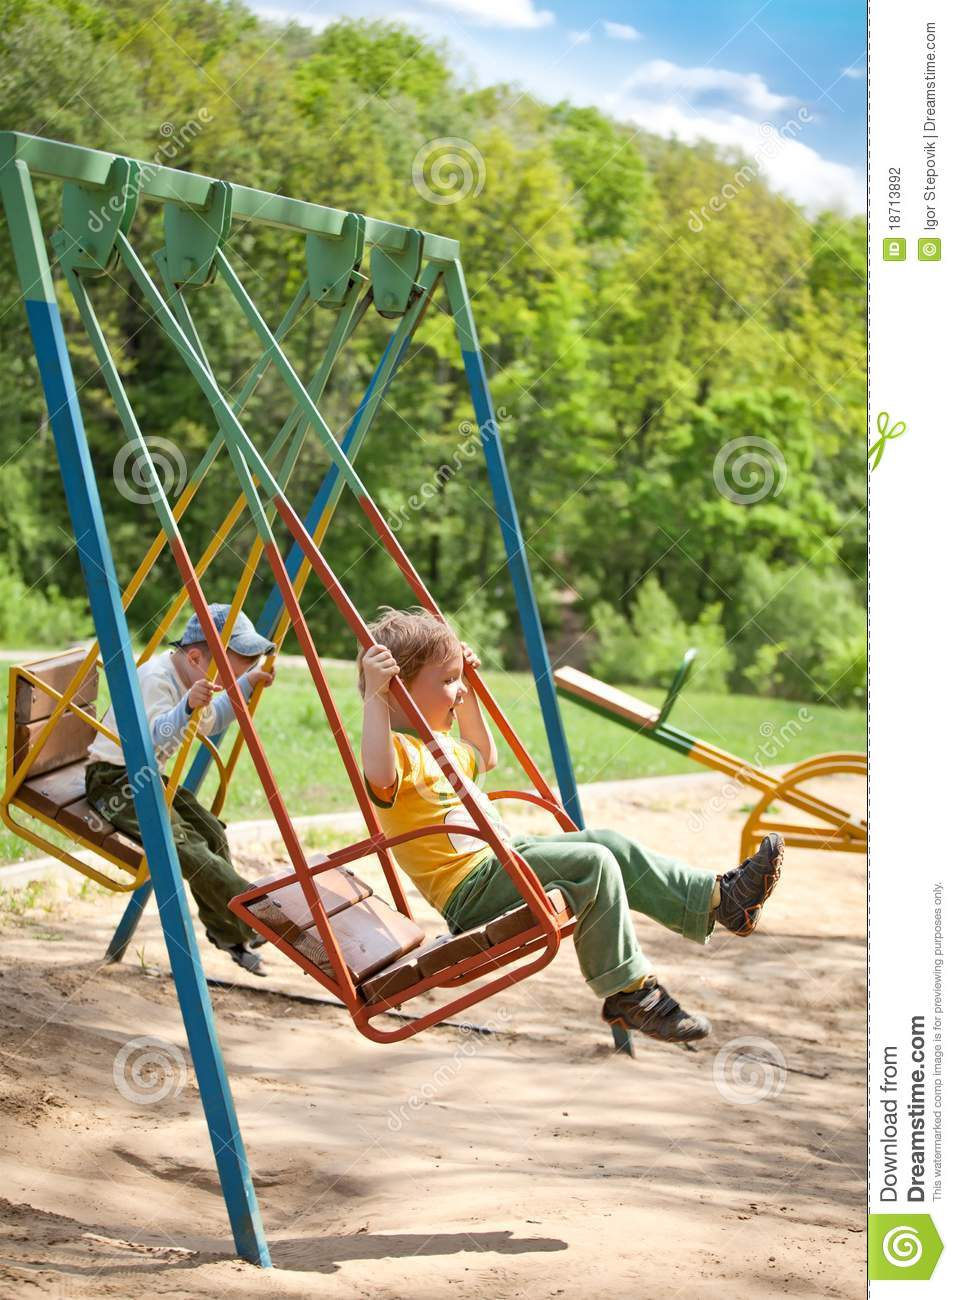 Two Boy Swinging On A Swing In The Park Stock Photo